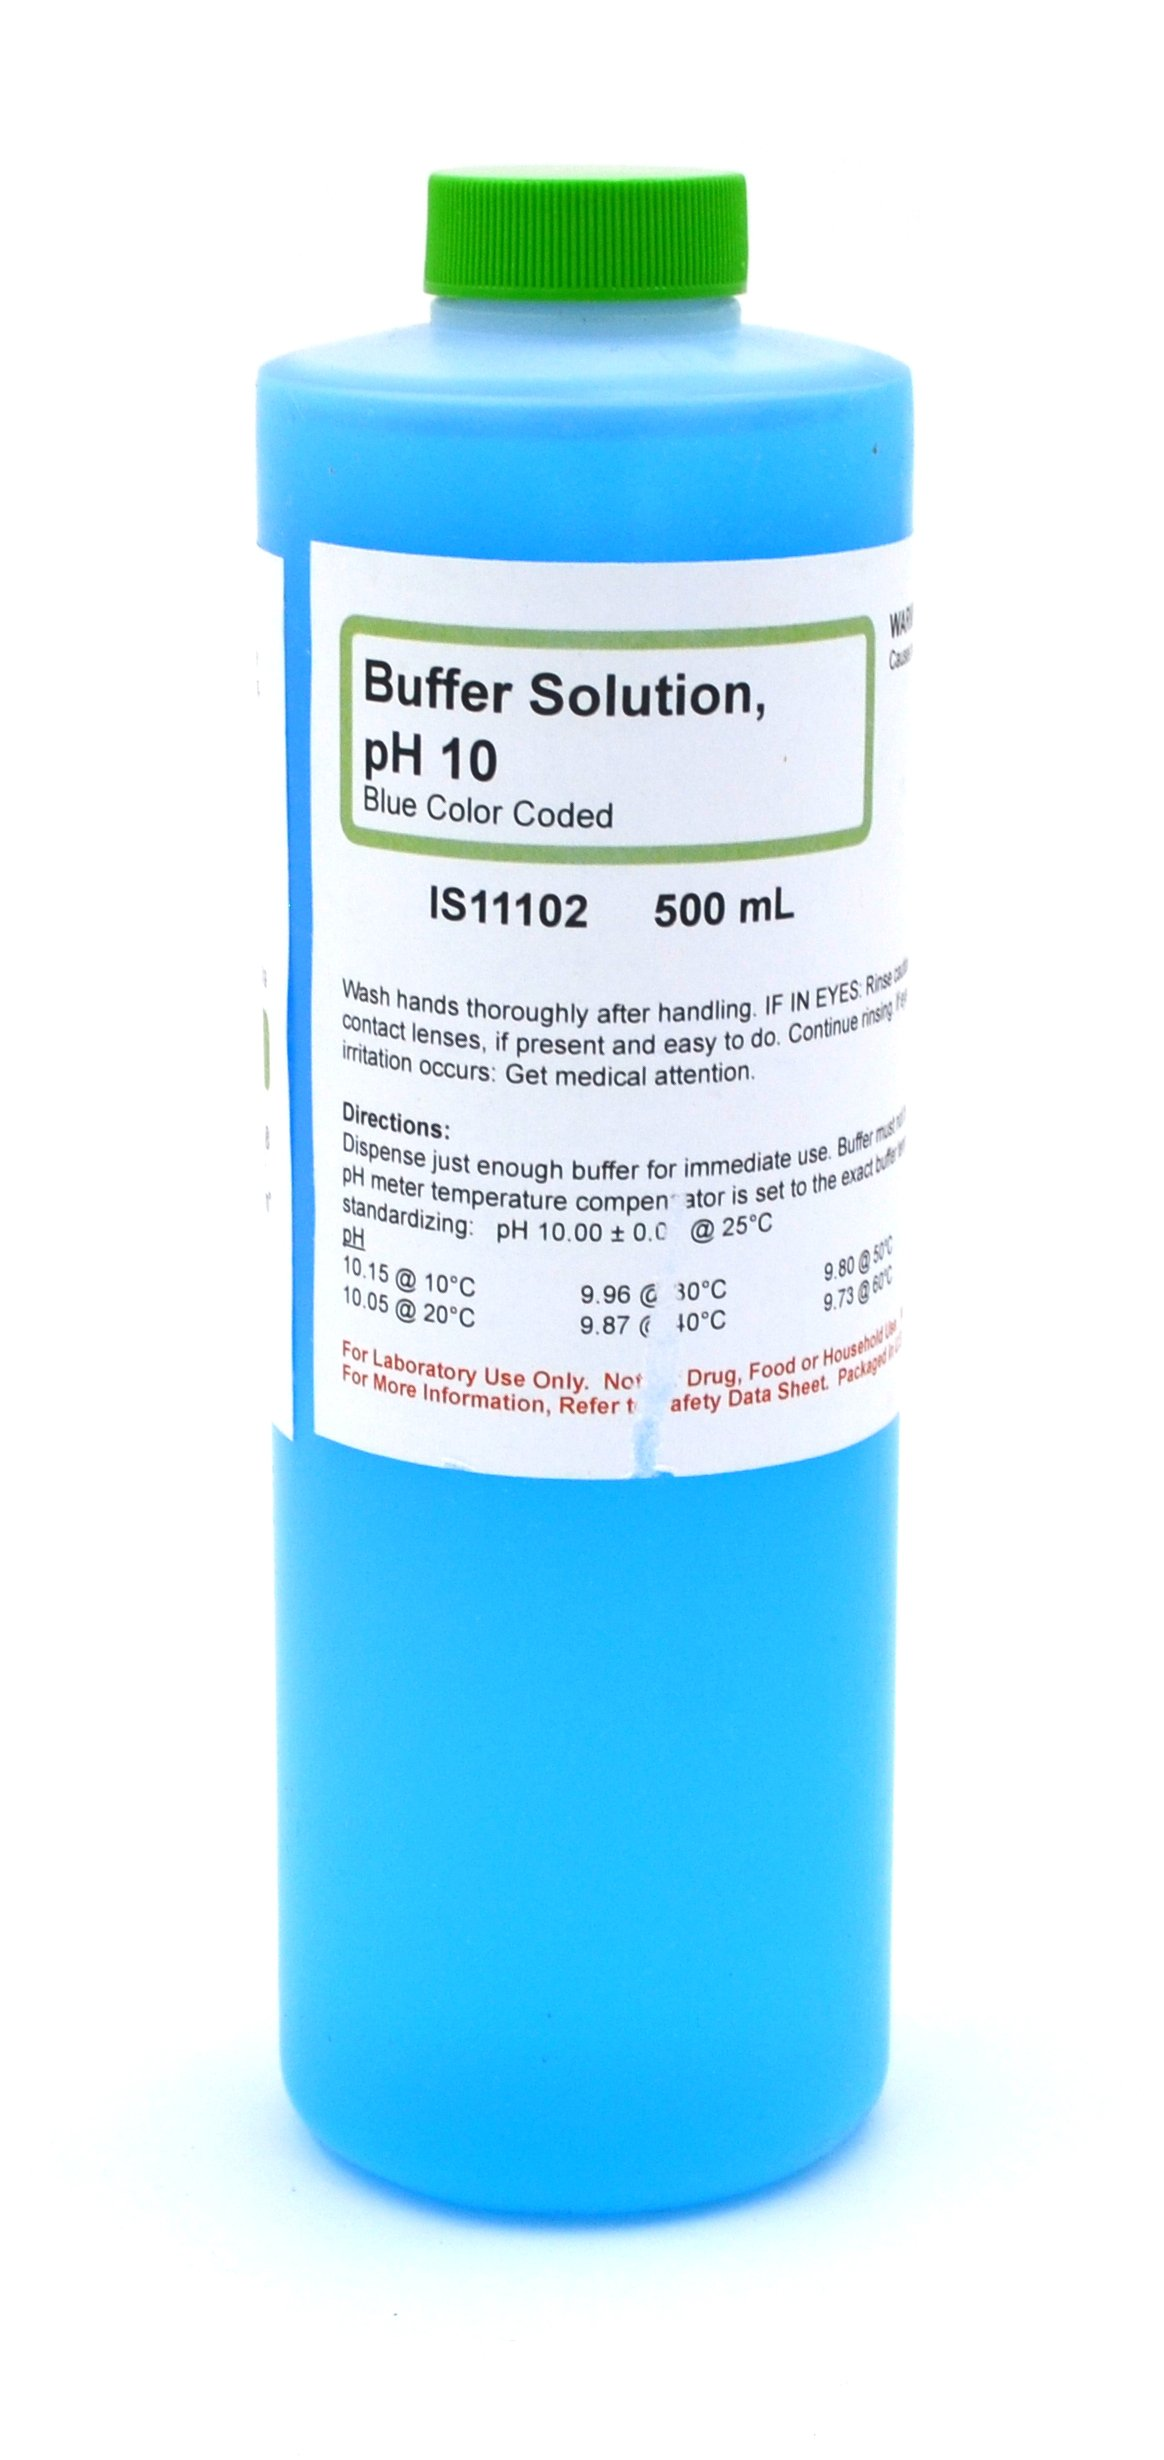 10.00 pH Standard Buffer Solution, Blue, 500mL - The Curated Chemical Collection by Innovating Science